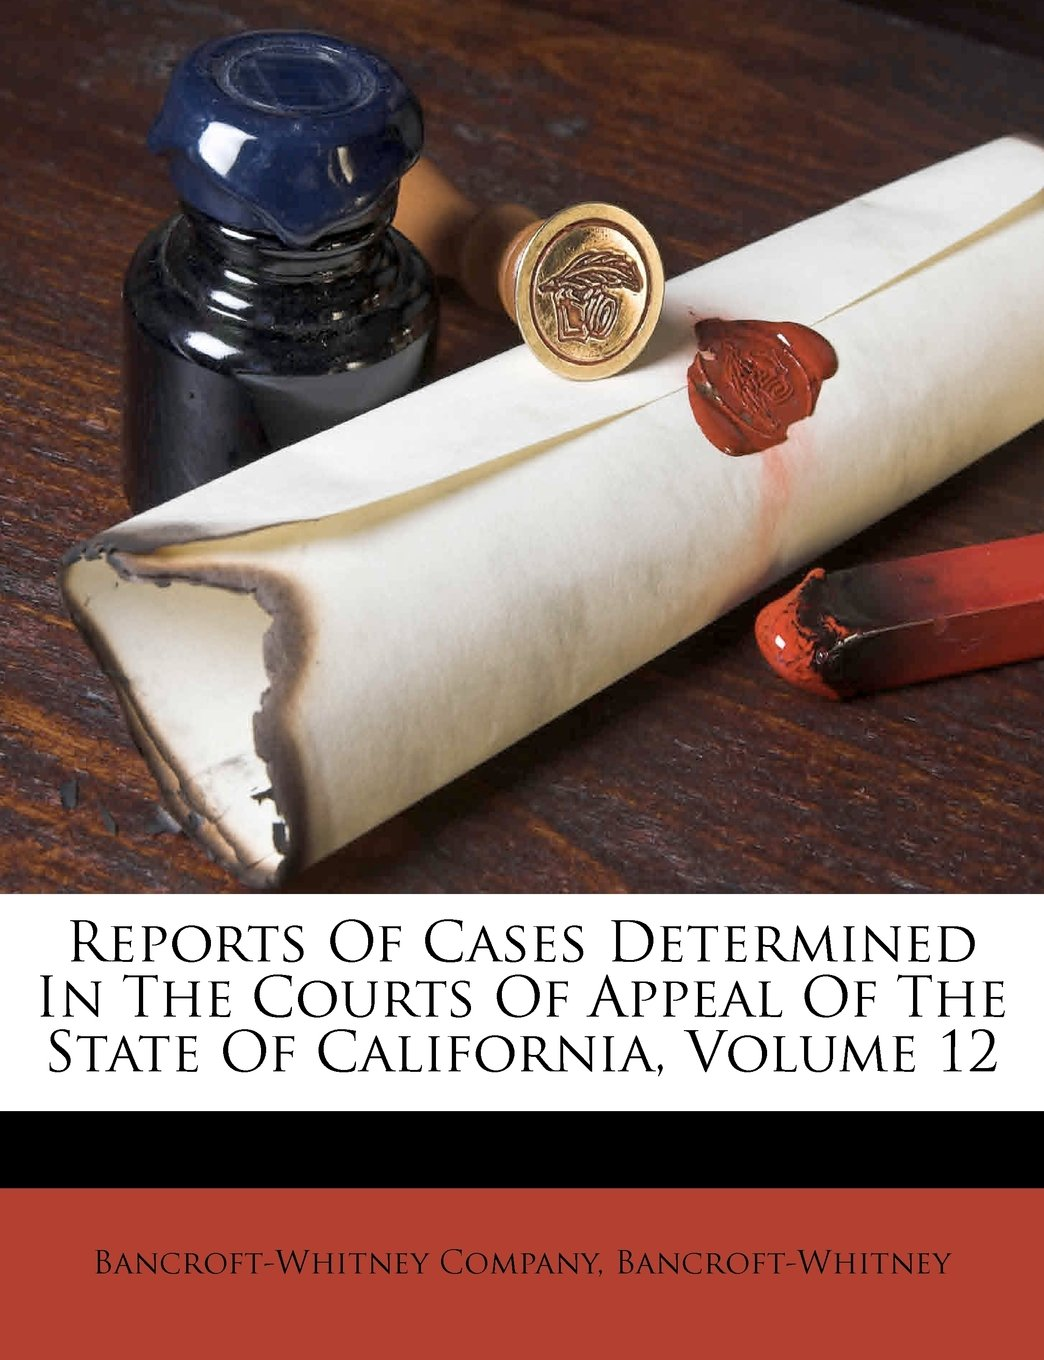 Download Reports Of Cases Determined In The Courts Of Appeal Of The State Of California, Volume 12 ebook